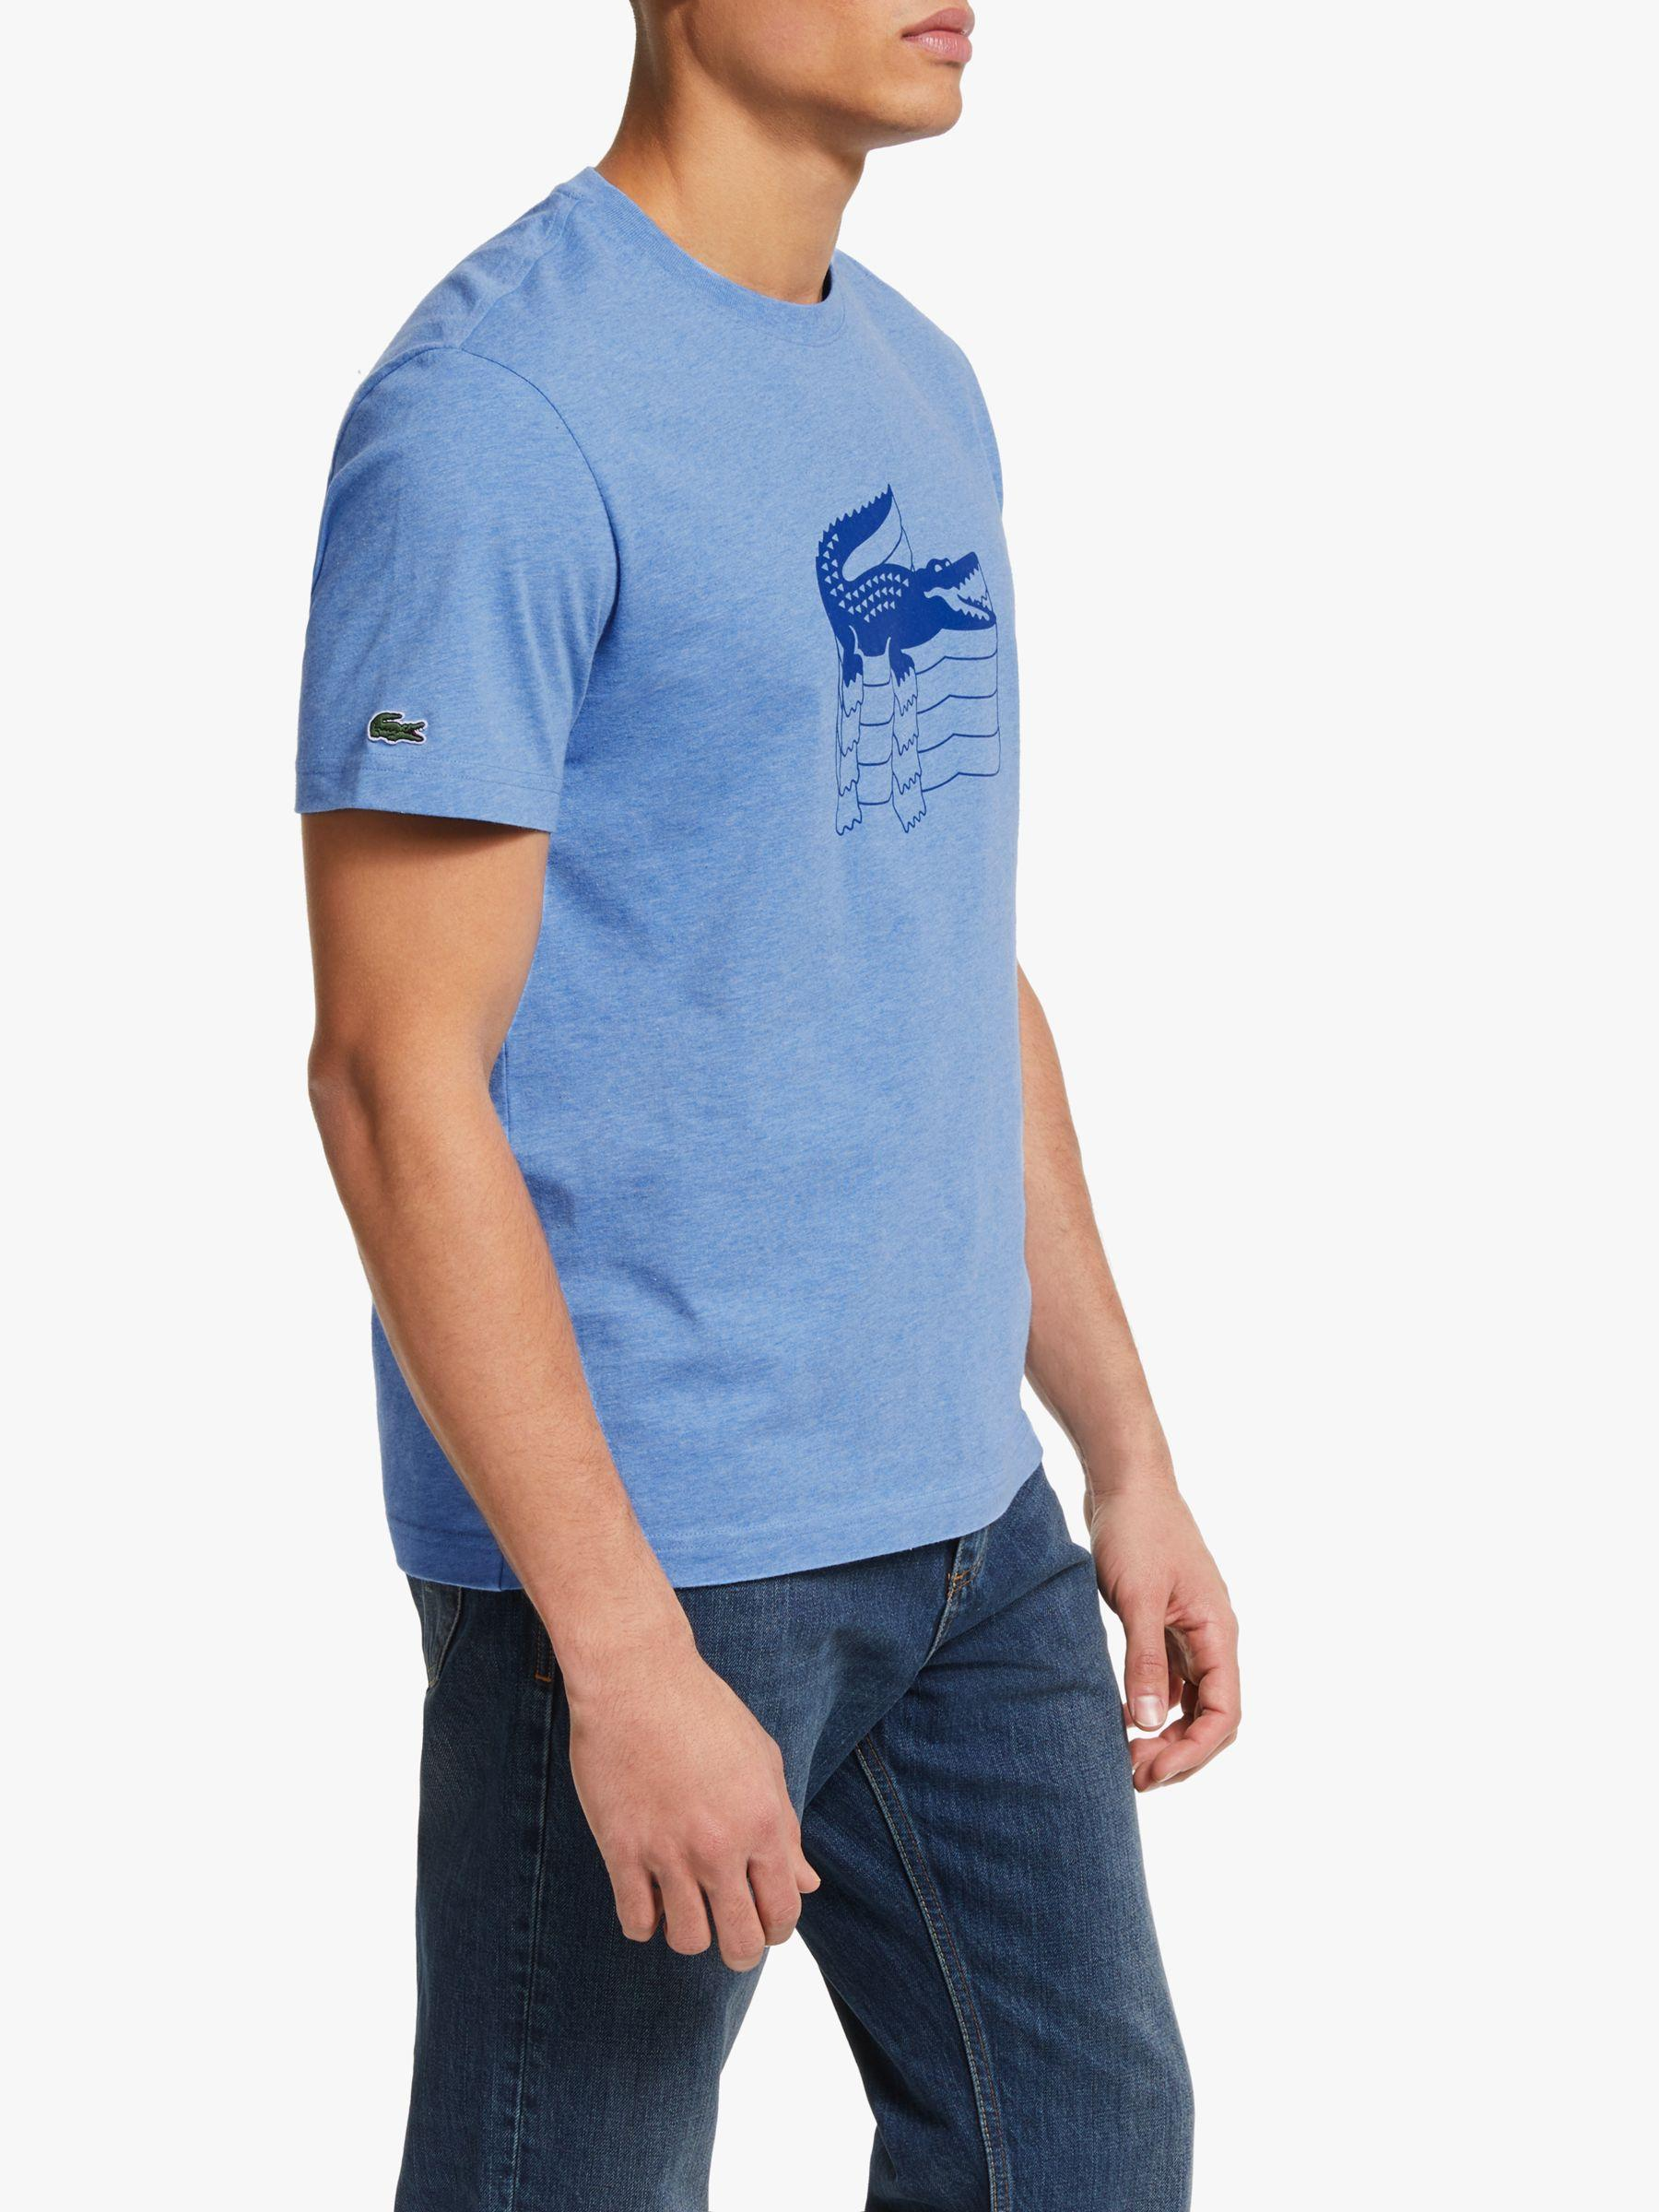 510fa3f2 Lacoste. Men's Blue Short Sleeve Logo T-shirt. £55 From John Lewis and  Partners